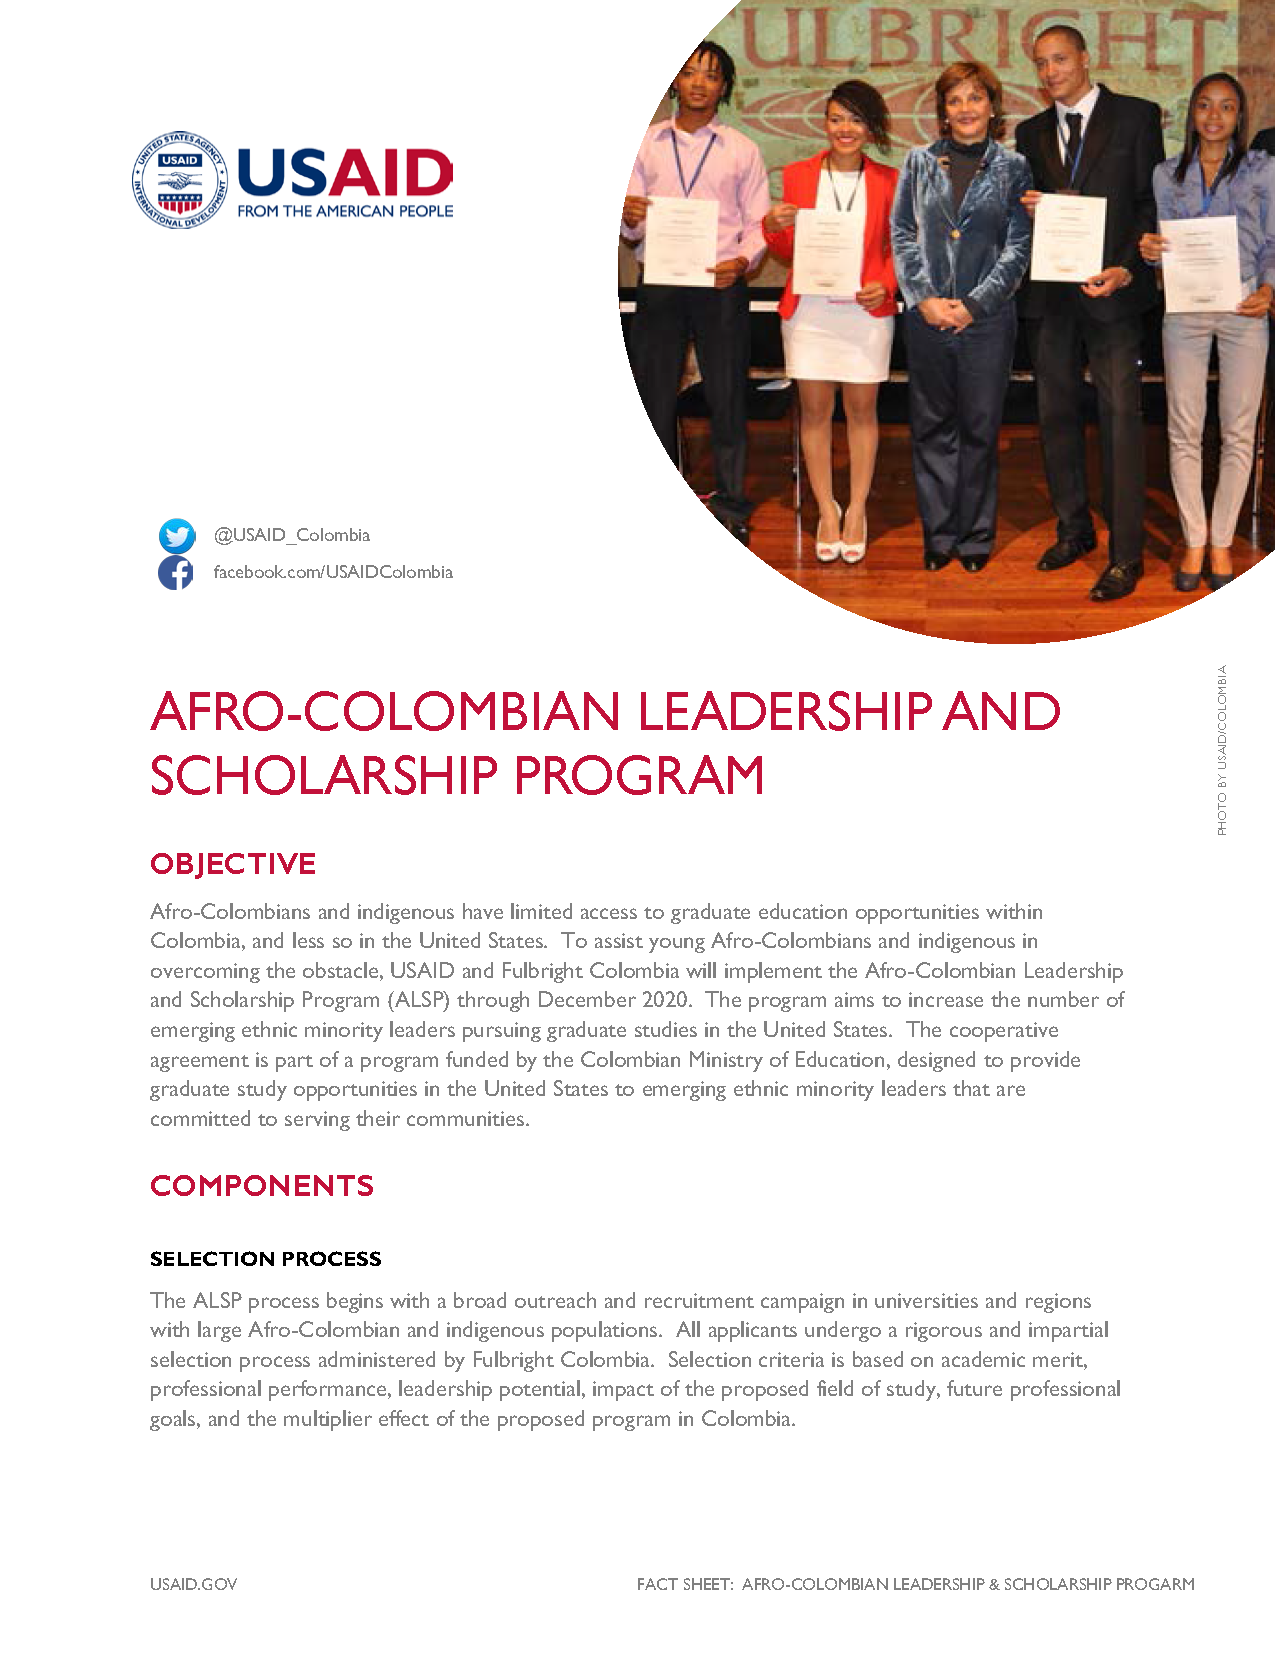 Afro-Colombian Leadership and Scholarship Program